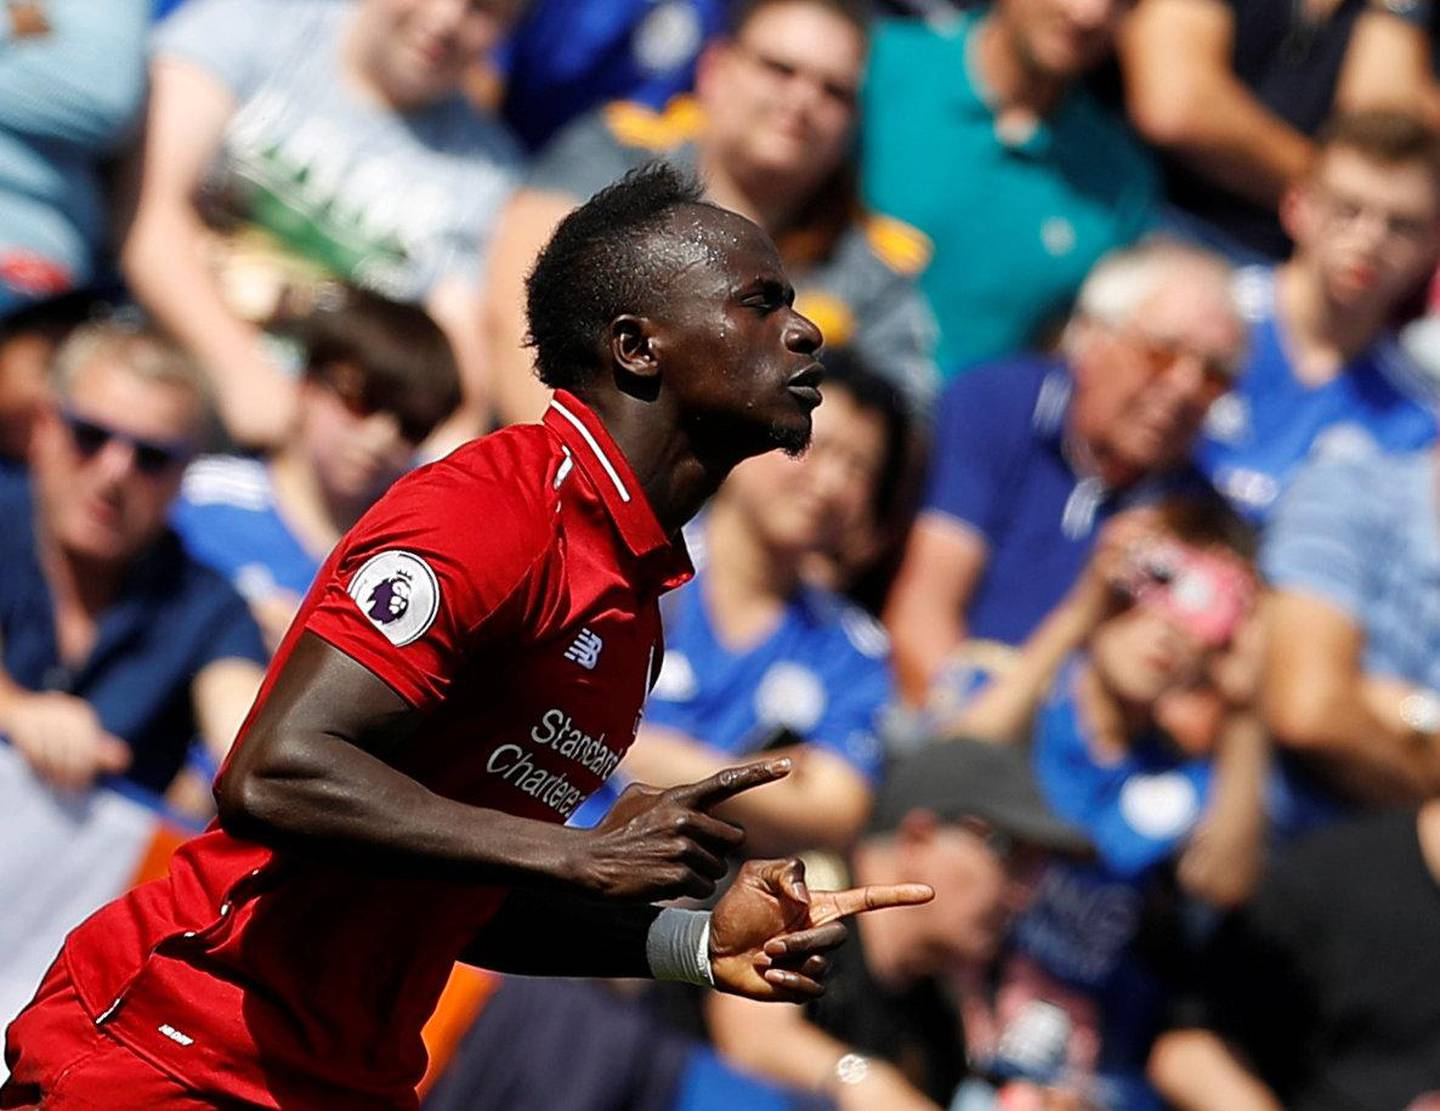 """Soccer Football - Premier League - Leicester City v Liverpool - King Power Stadium, Leicester, Britain - September 1, 2018  Liverpool's Sadio Mane celebrates scoring their first goal   REUTERS/Darren Staples  EDITORIAL USE ONLY. No use with unauthorized audio, video, data, fixture lists, club/league logos or """"live"""" services. Online in-match use limited to 75 images, no video emulation. No use in betting, games or single club/league/player publications.  Please contact your account representative for further details."""